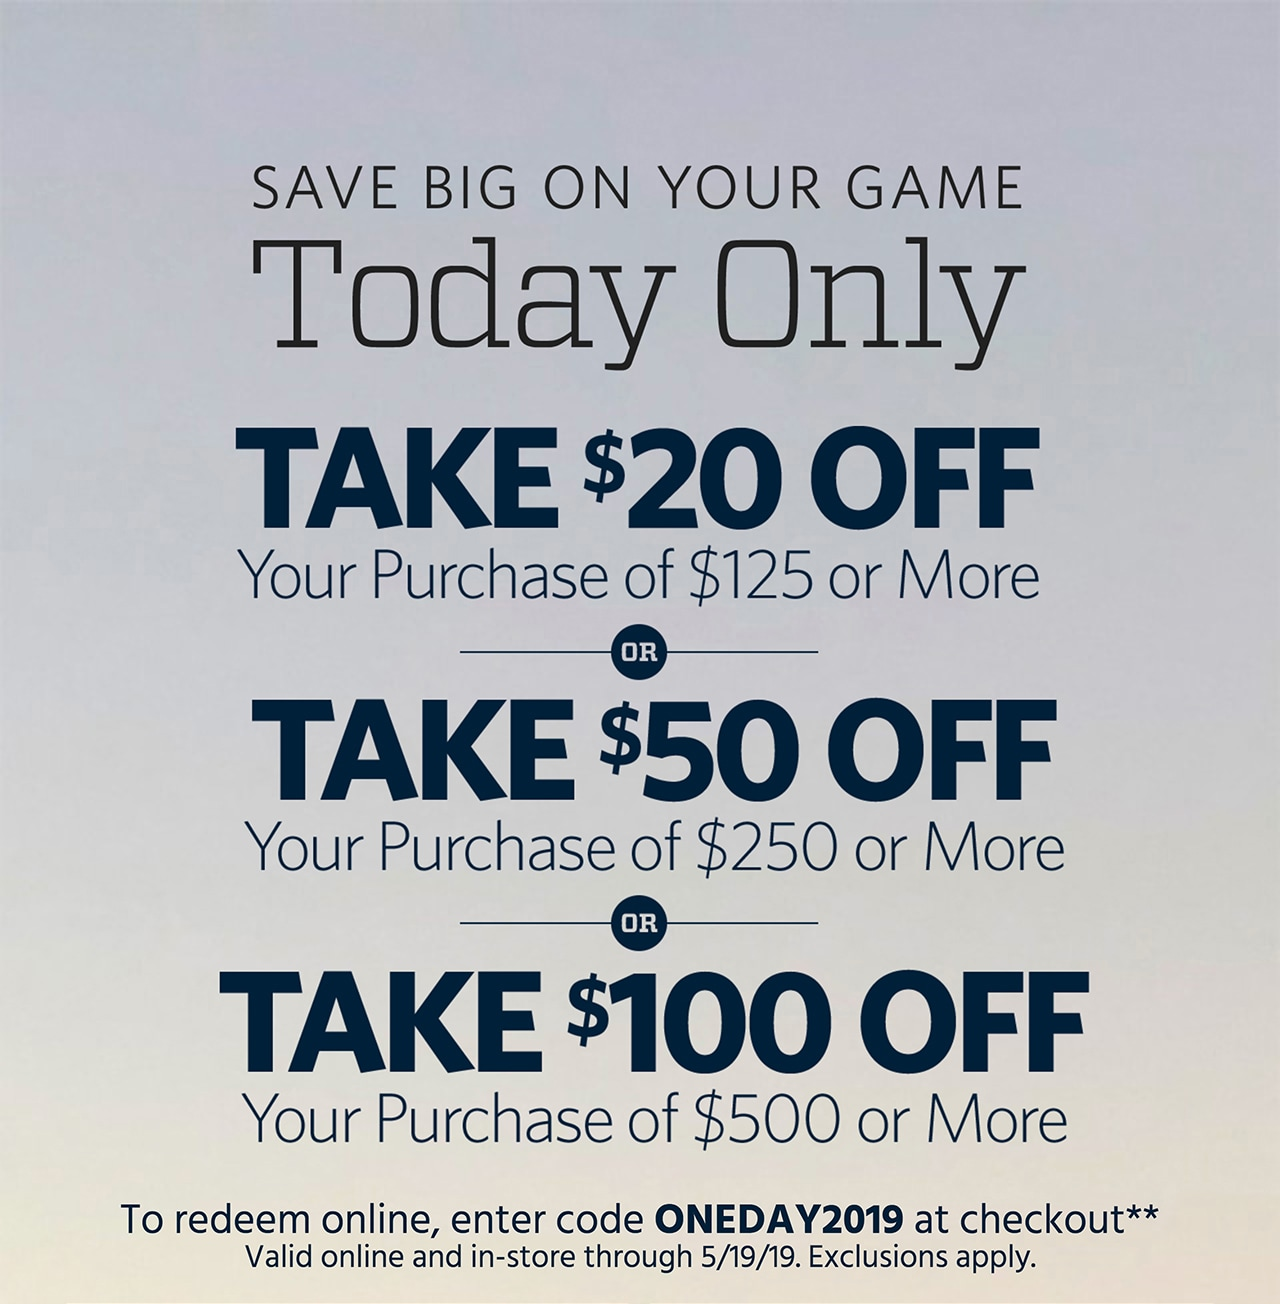 Save Big On Your Game Today Only | Take $20 Off Your Purchase of $125 or More or Take $50 Off Your Purchase of $250 or More or Take $100 Off Your Purchase of $500 or More | If after 5/20/19, 11:59pm, Sorry! You missed this promotion, but you can still shop this week's deals. | SHOP NOW